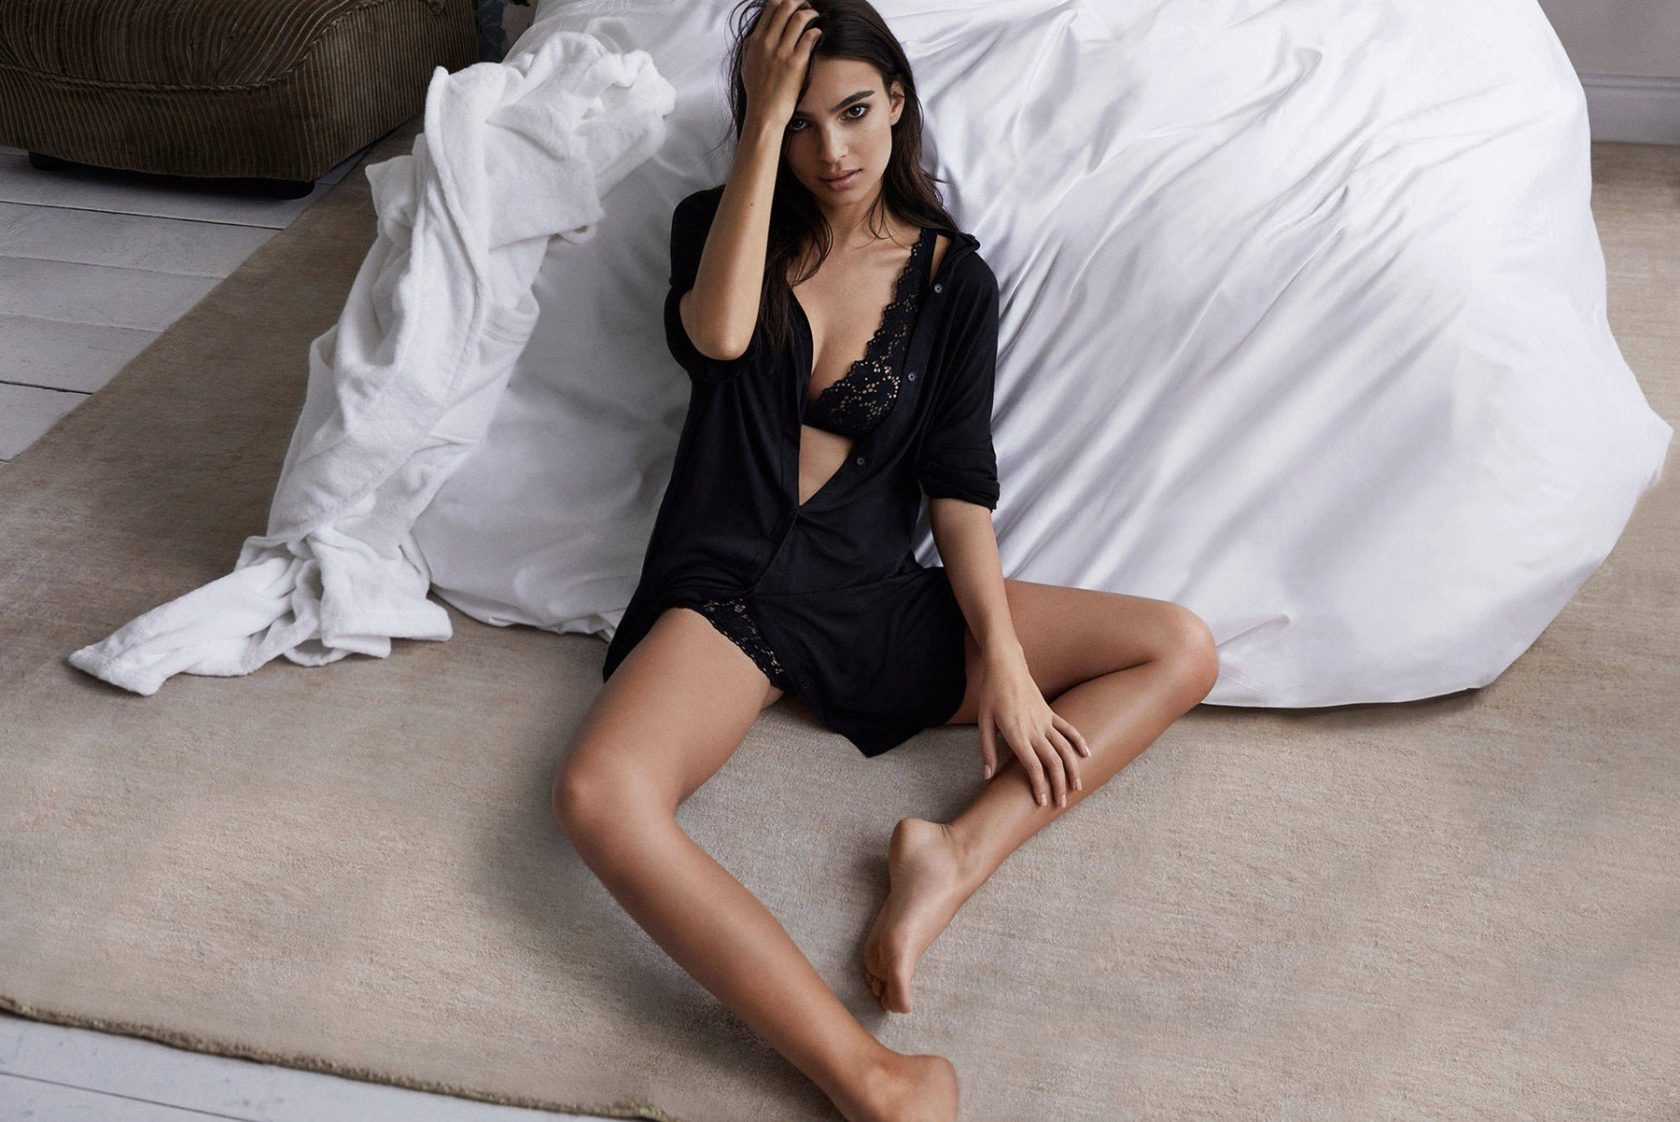 Emily Ratajkowski is the face for the new Spring 2017 lingerie campaign of DKNY, Image: 325162246, License: Rights-managed, Restrictions: , Model Release: no, Credit line: Profimedia, Thunder Press